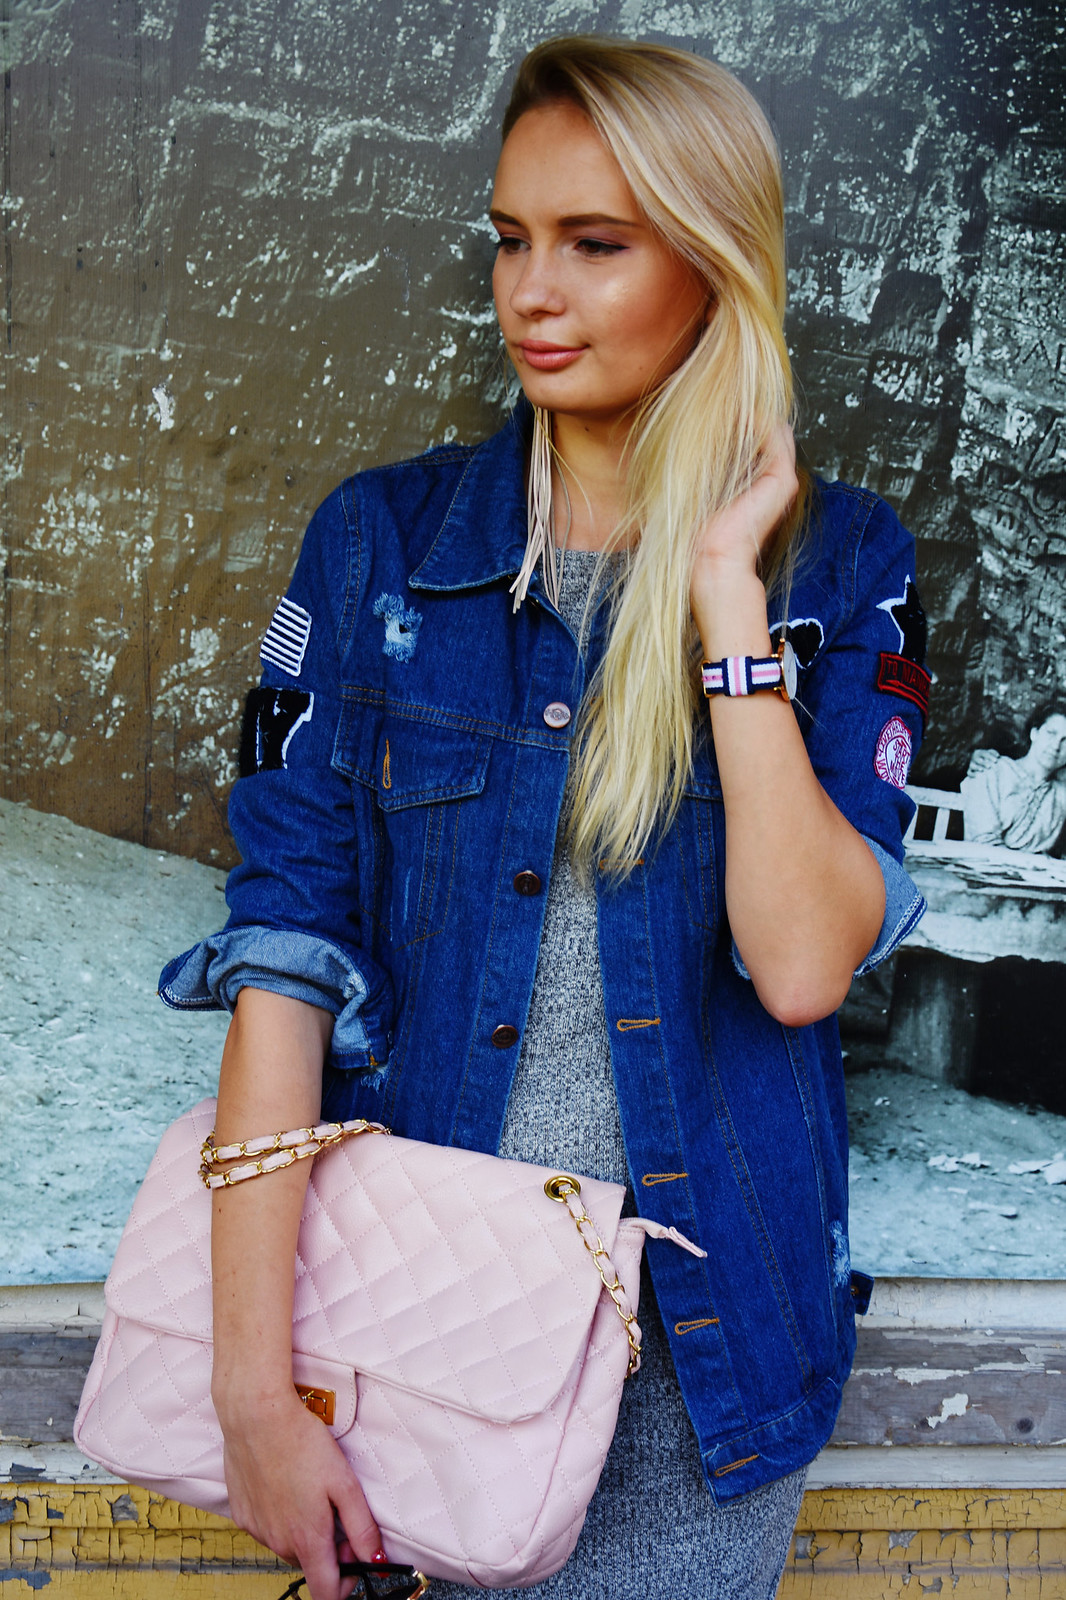 Styling a distressed denim jacket